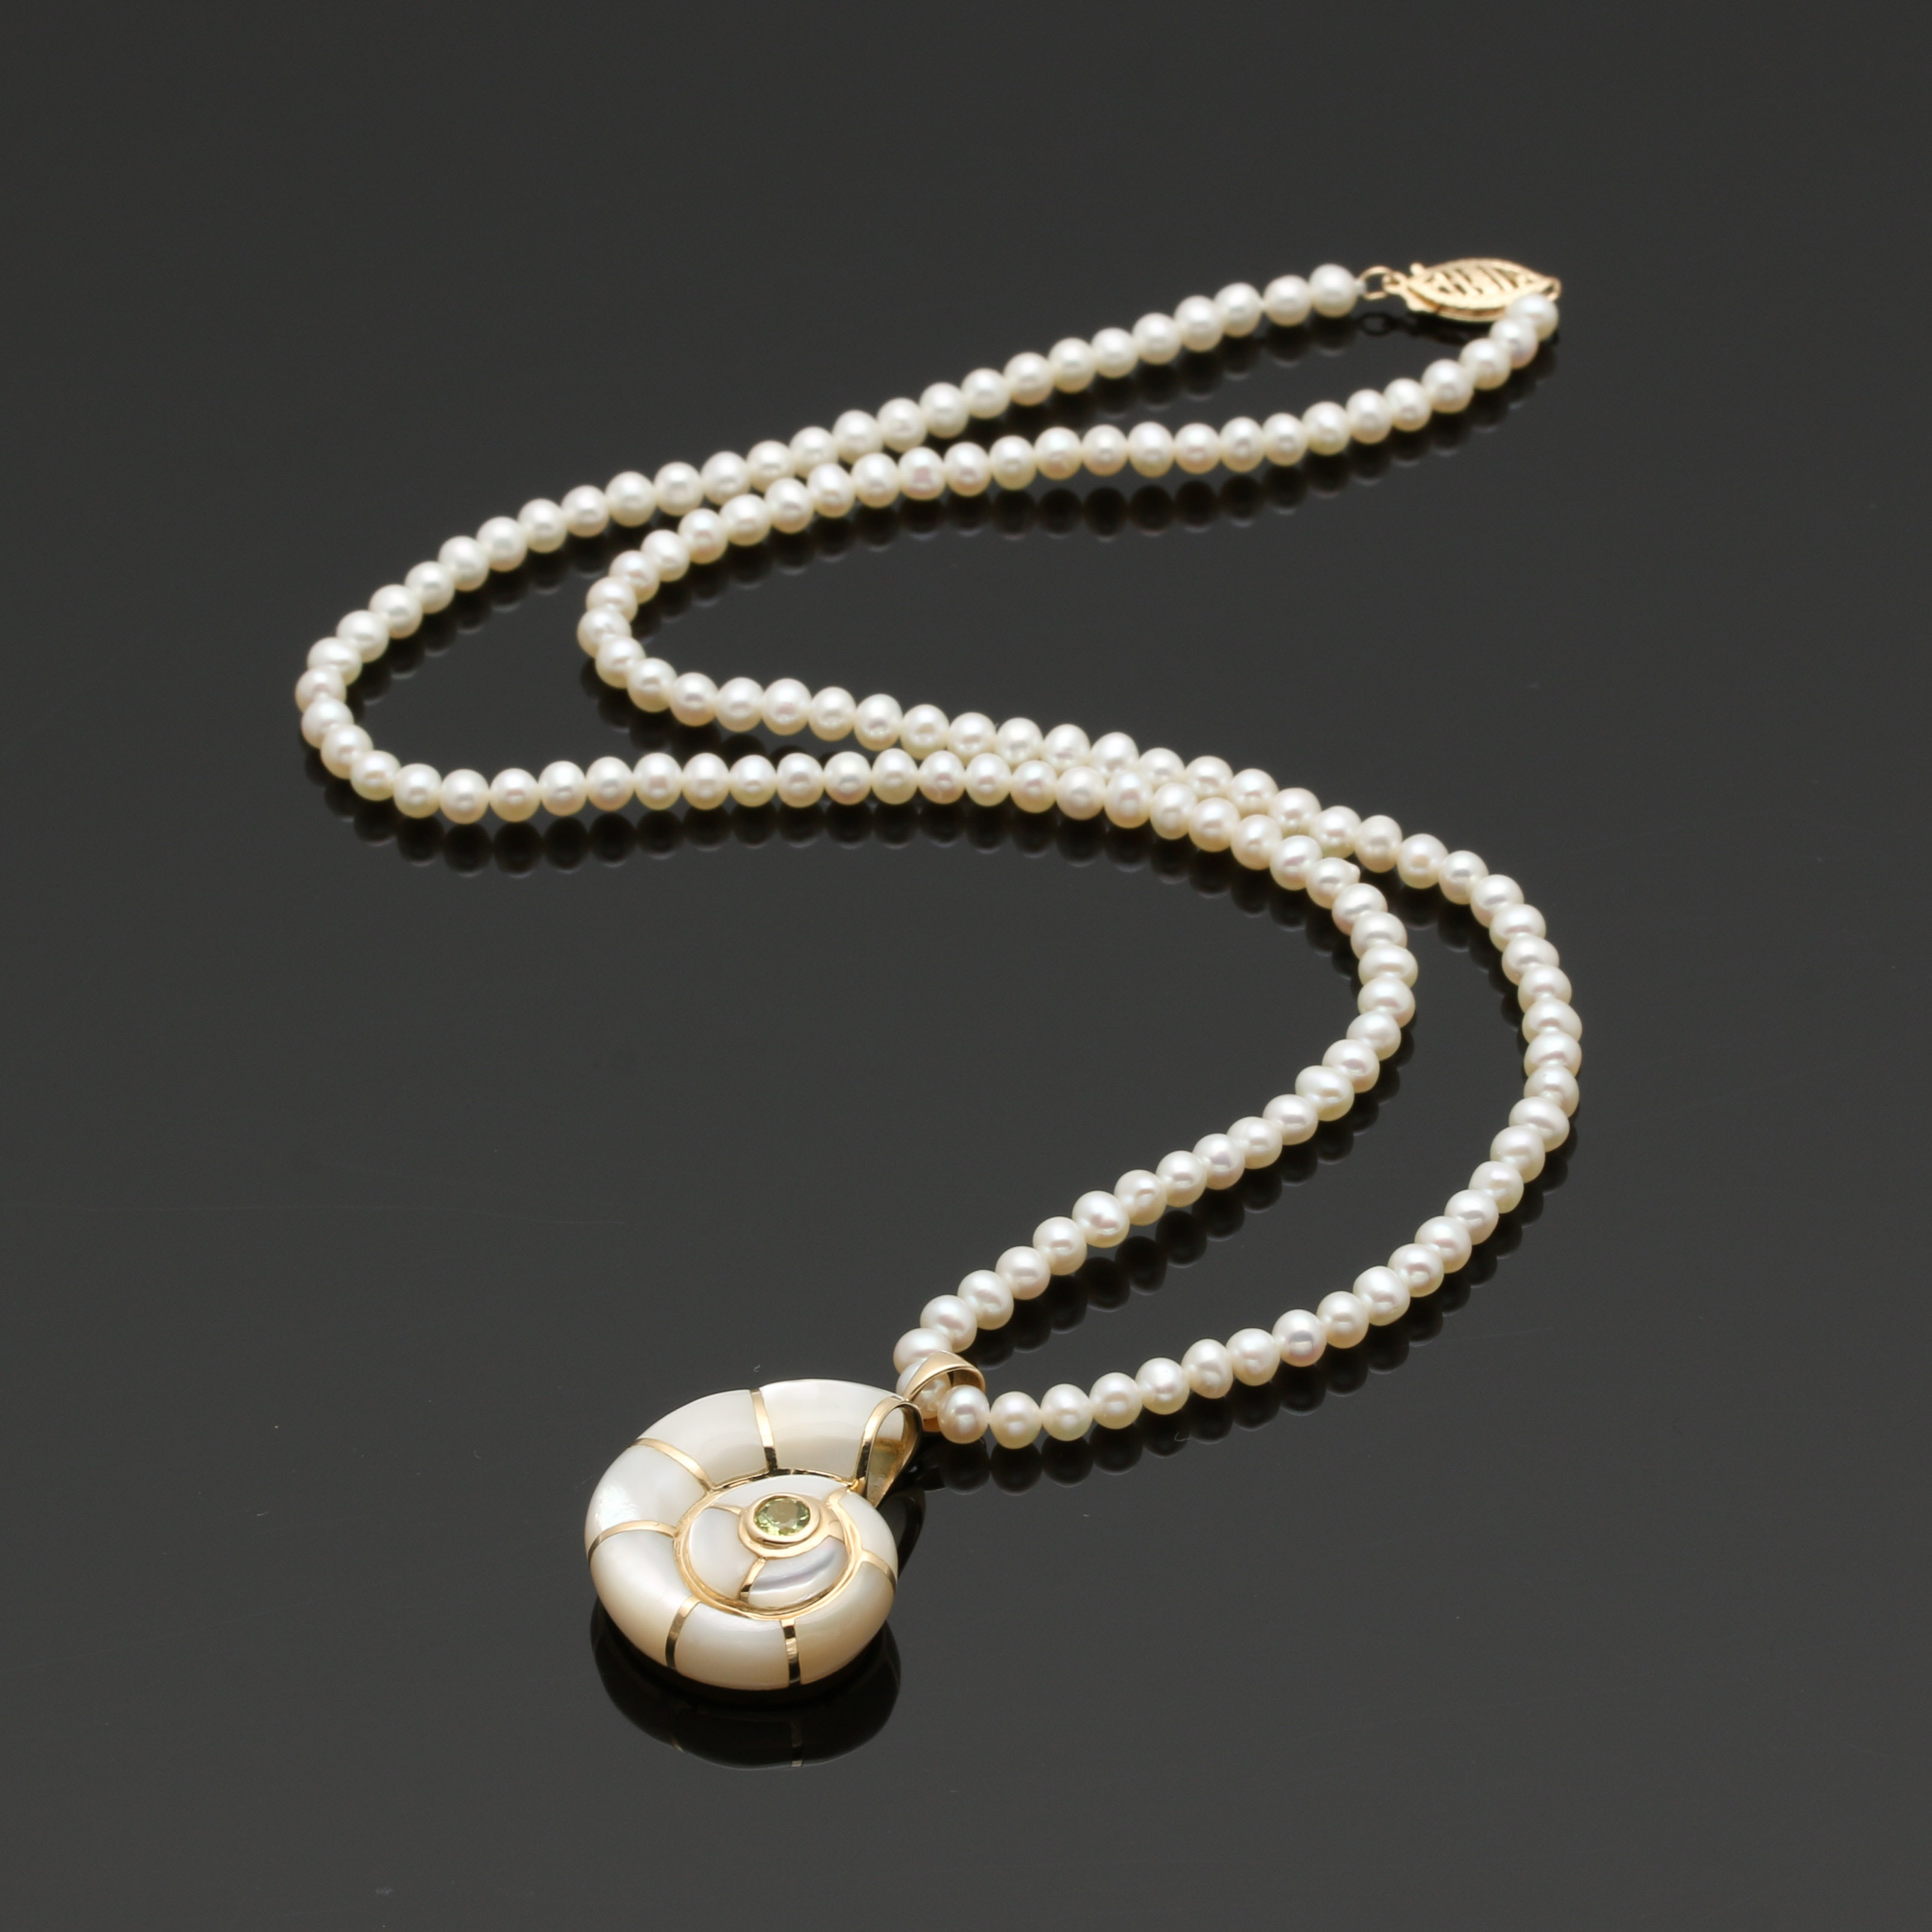 14K Yellow Gold Cultured Pearl and Gemstone Pendant Necklace